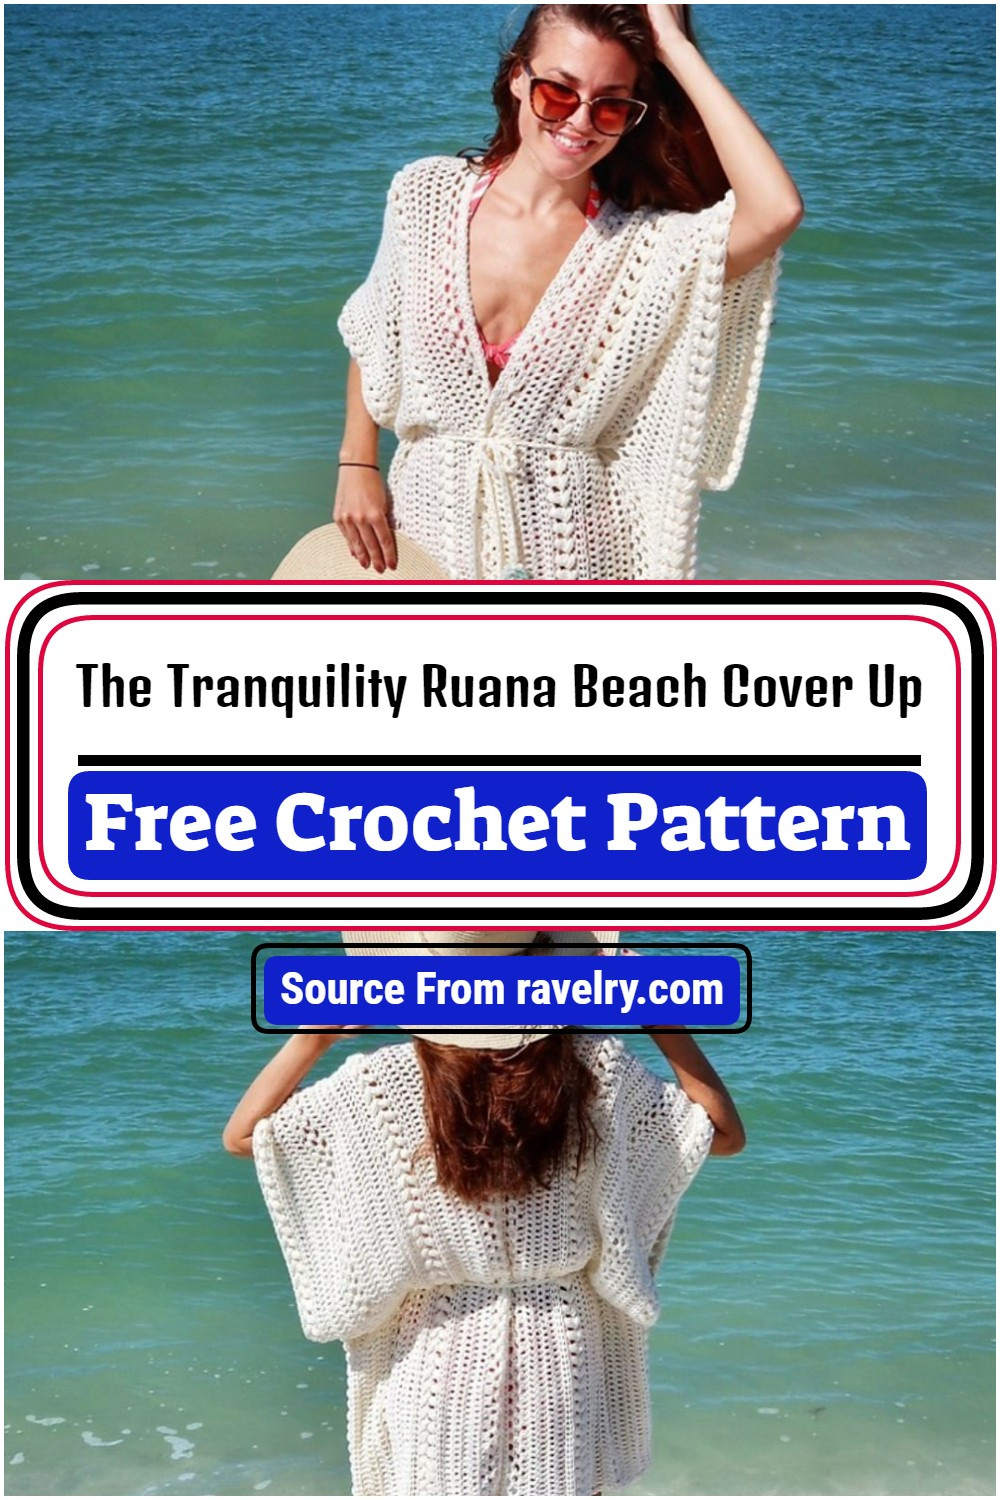 The Tranquility Ruana Beach Cover Up